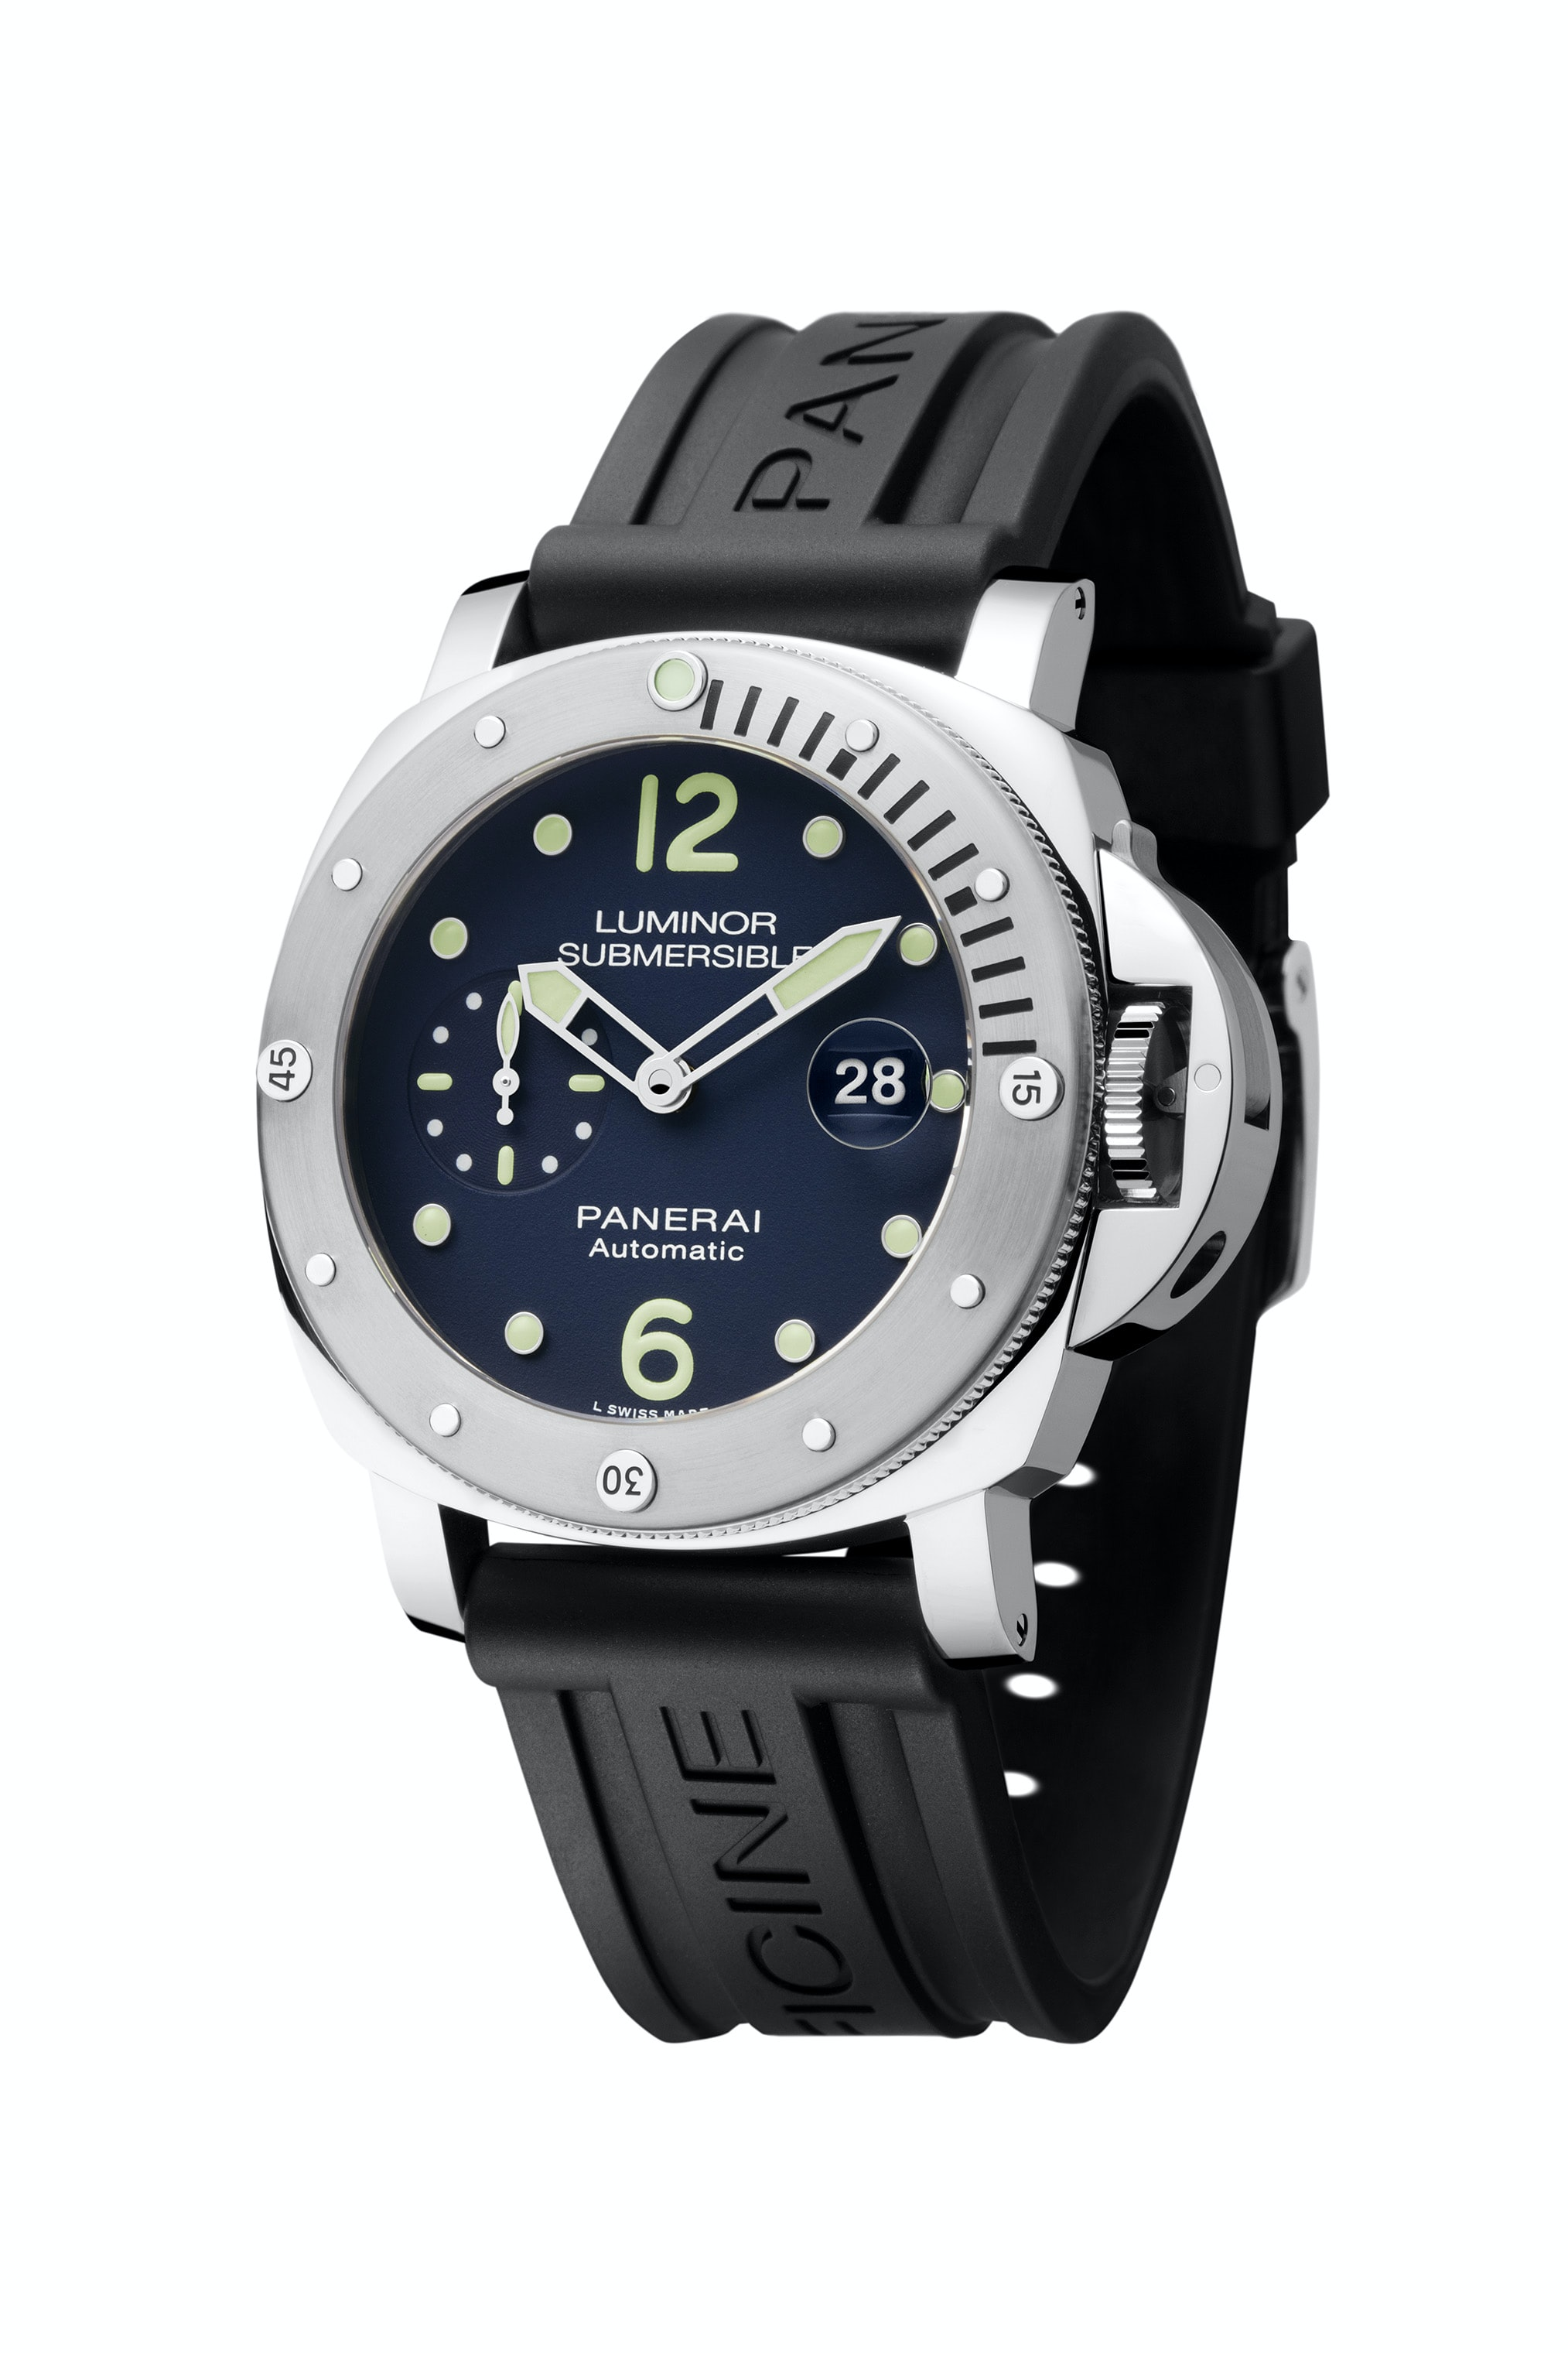 Introducing: The Panerai Limited Edition Luminor Submersible Acciaio PAM00731, An E-Boutique Limited Edition Introducing: The Panerai Limited Edition Luminor Submersible Acciaio PAM00731, An E-Boutique Limited Edition Pam731 Cat 3 4 B